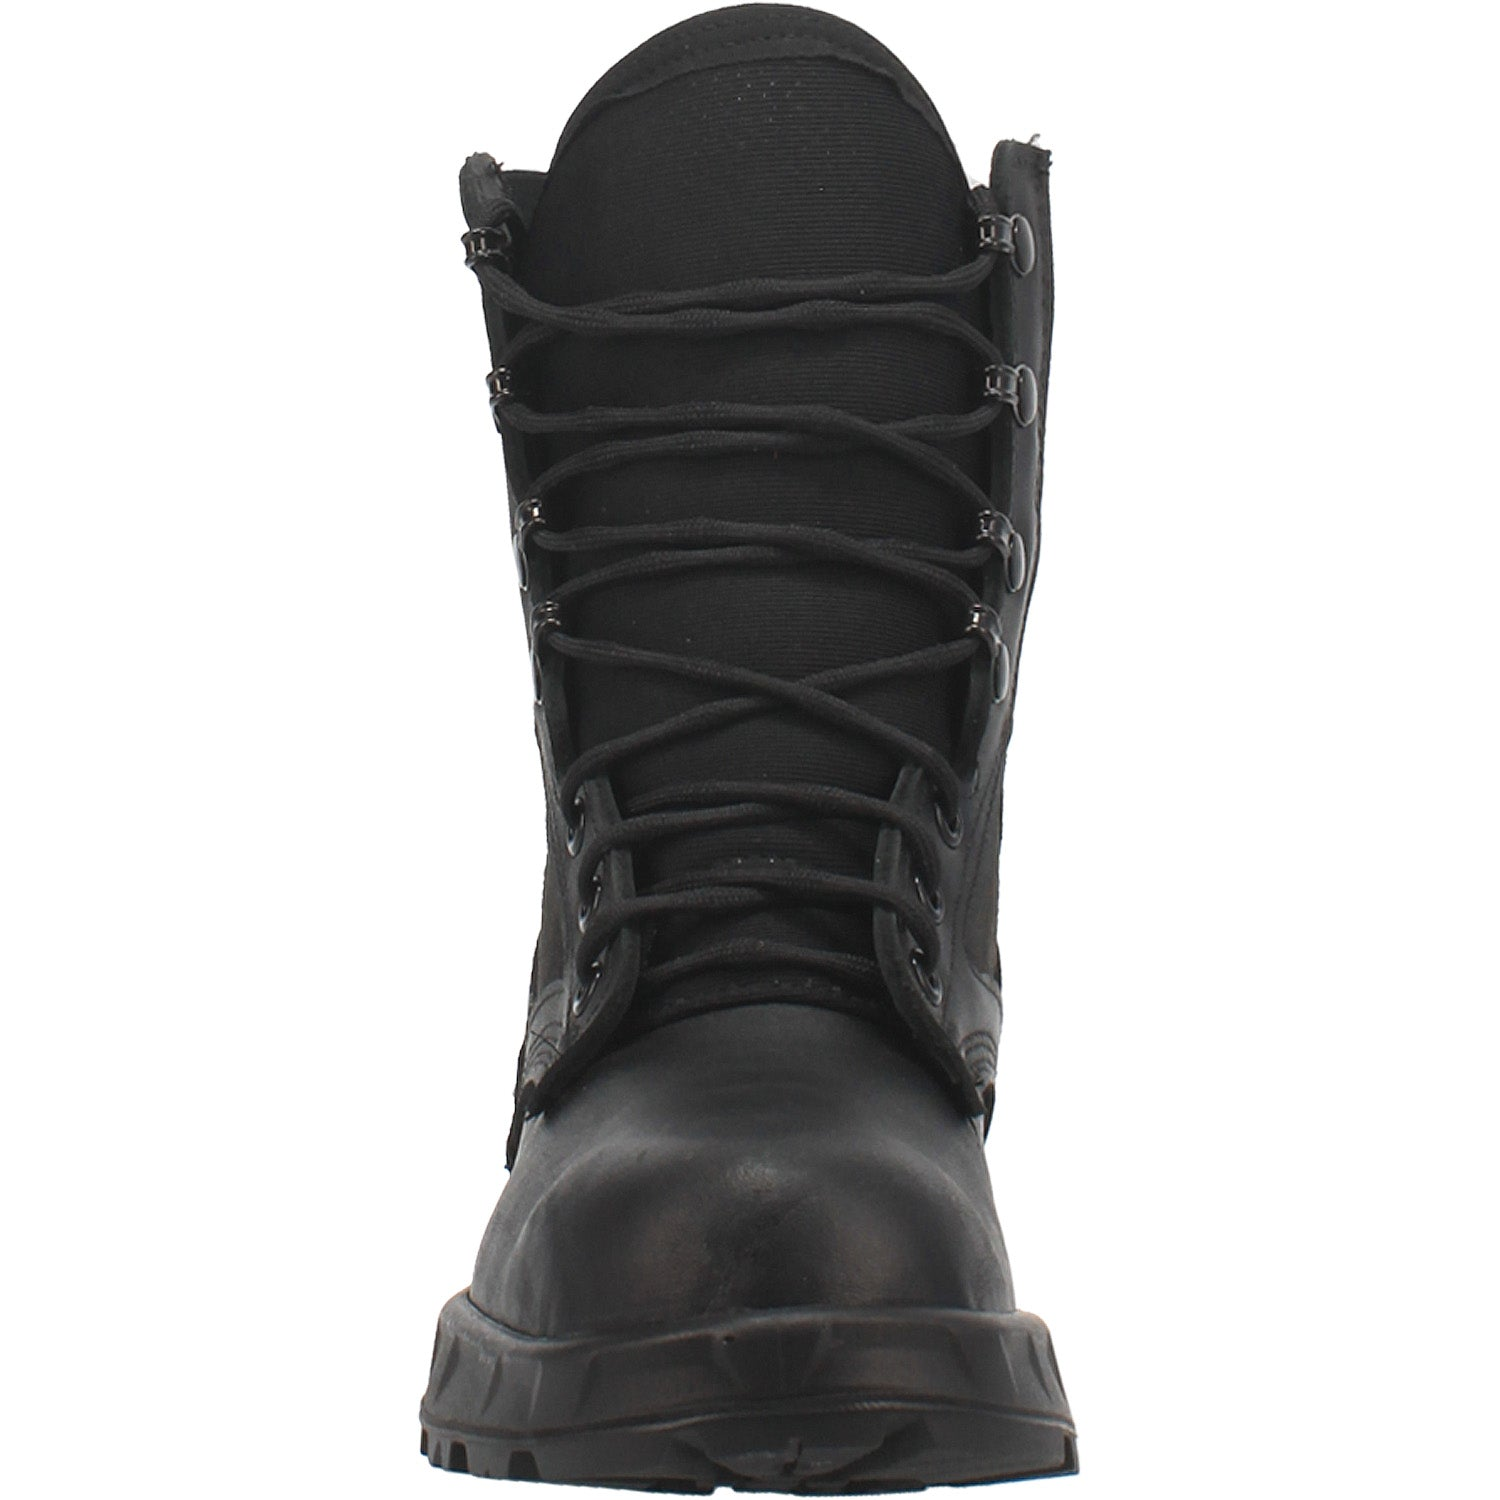 T2 Ultra Light Hot Weather Combat Boot 14940878766122